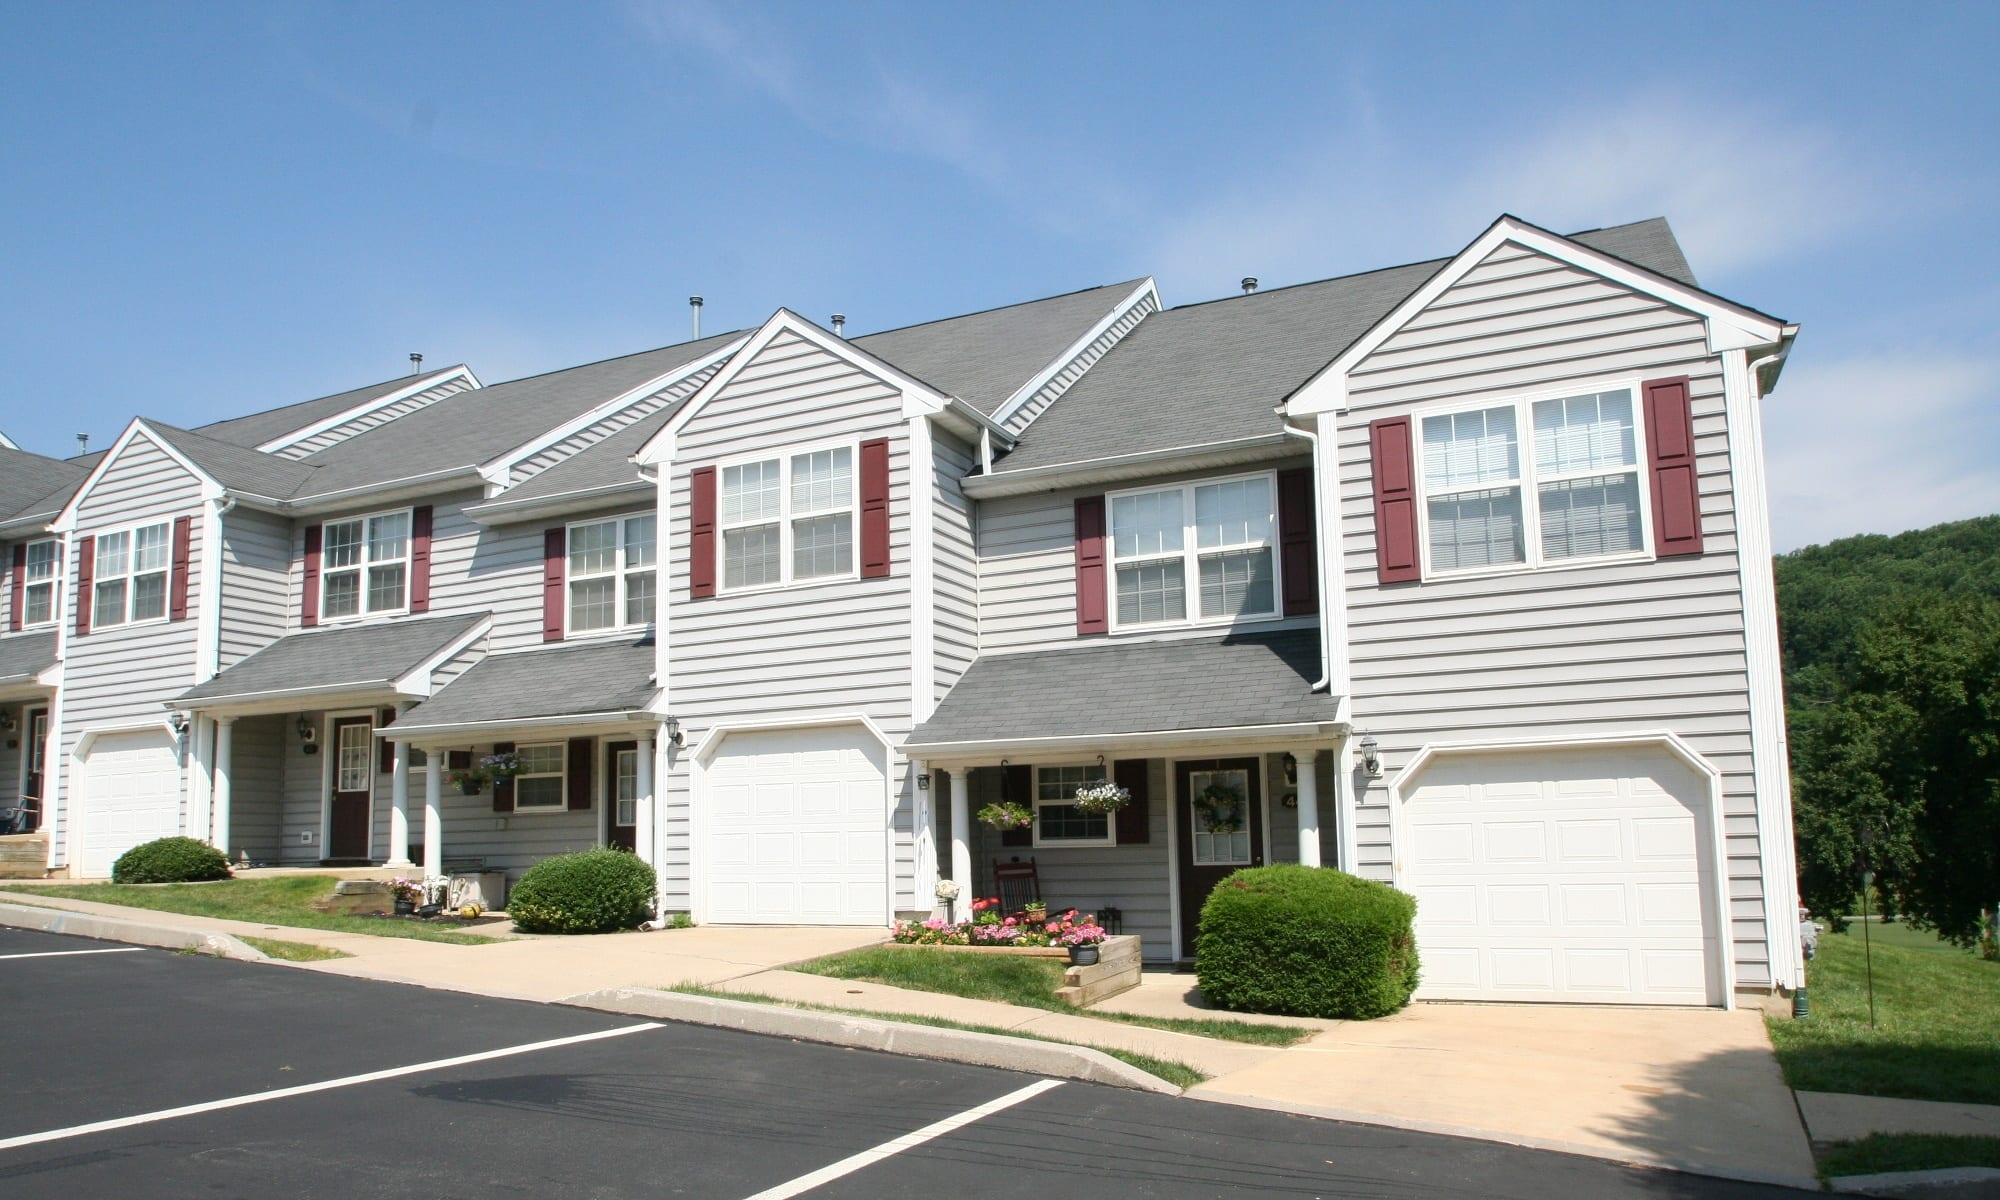 Apartments in The Fairways Apartments and Townhomes in Thorndale, Pennsylvania